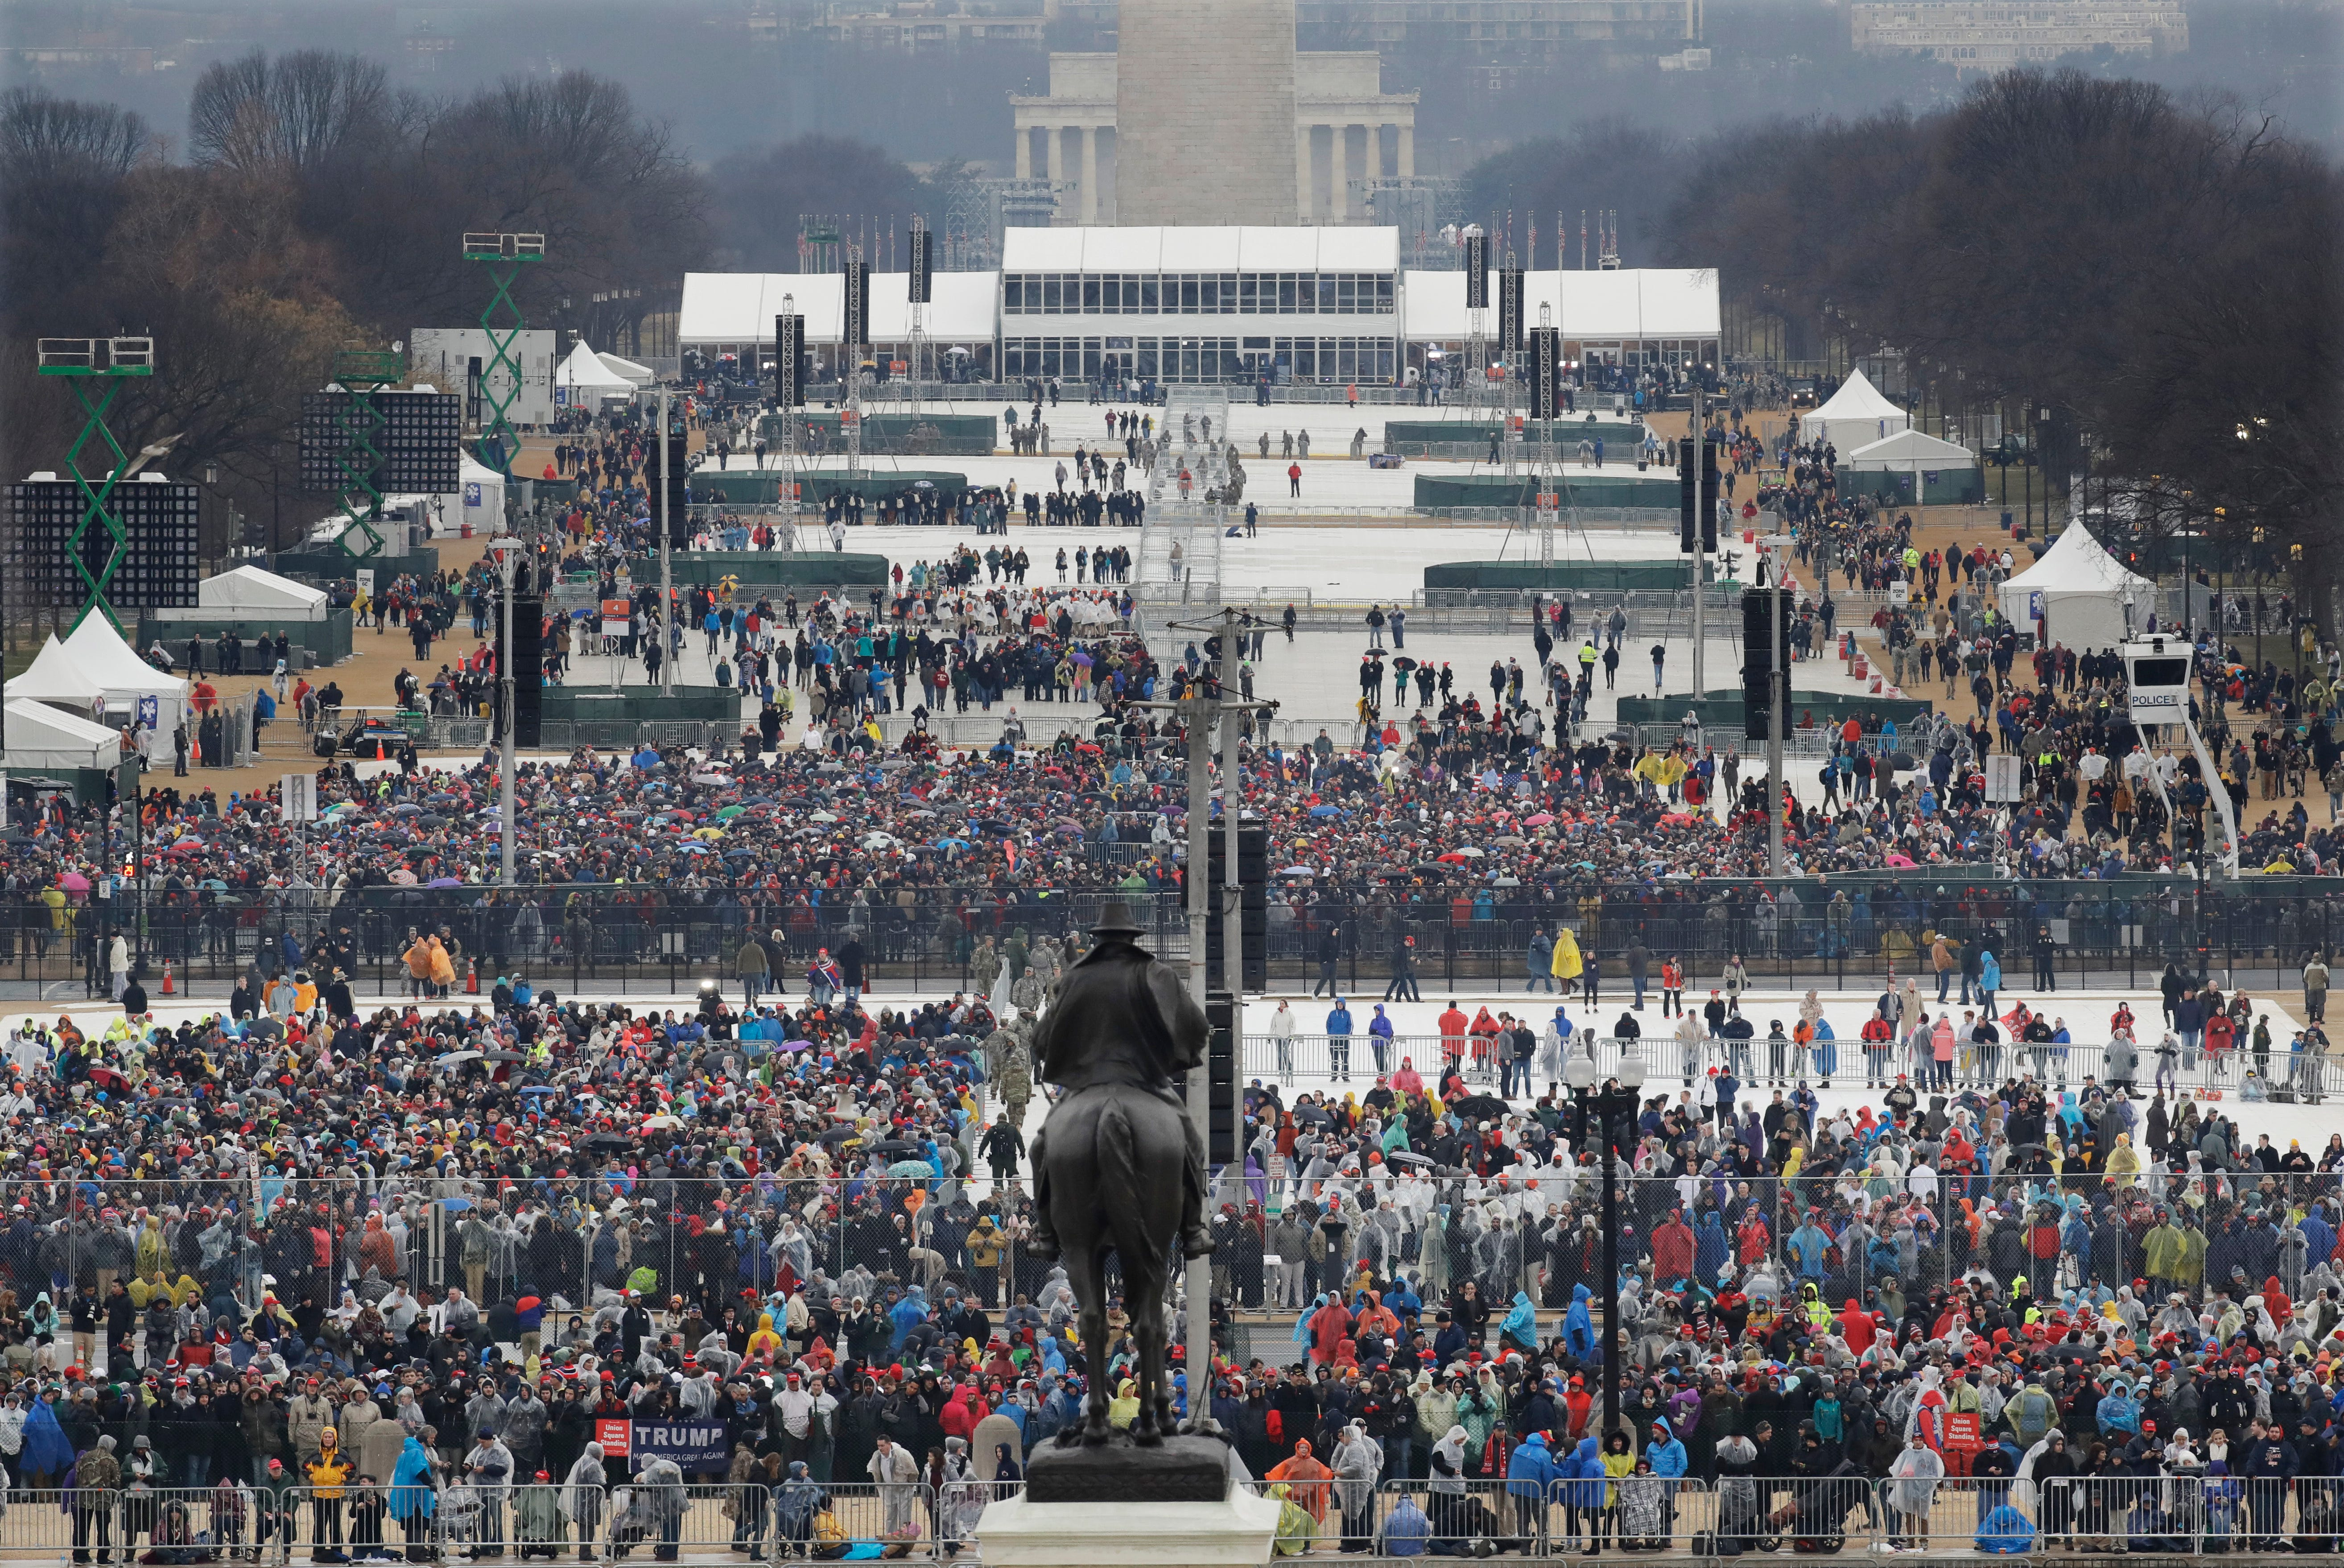 Trump Inauguration Photos Edited To Make Crowd Appear Bigger Report,4 Bedroom Mobile Home For Sale Alberta